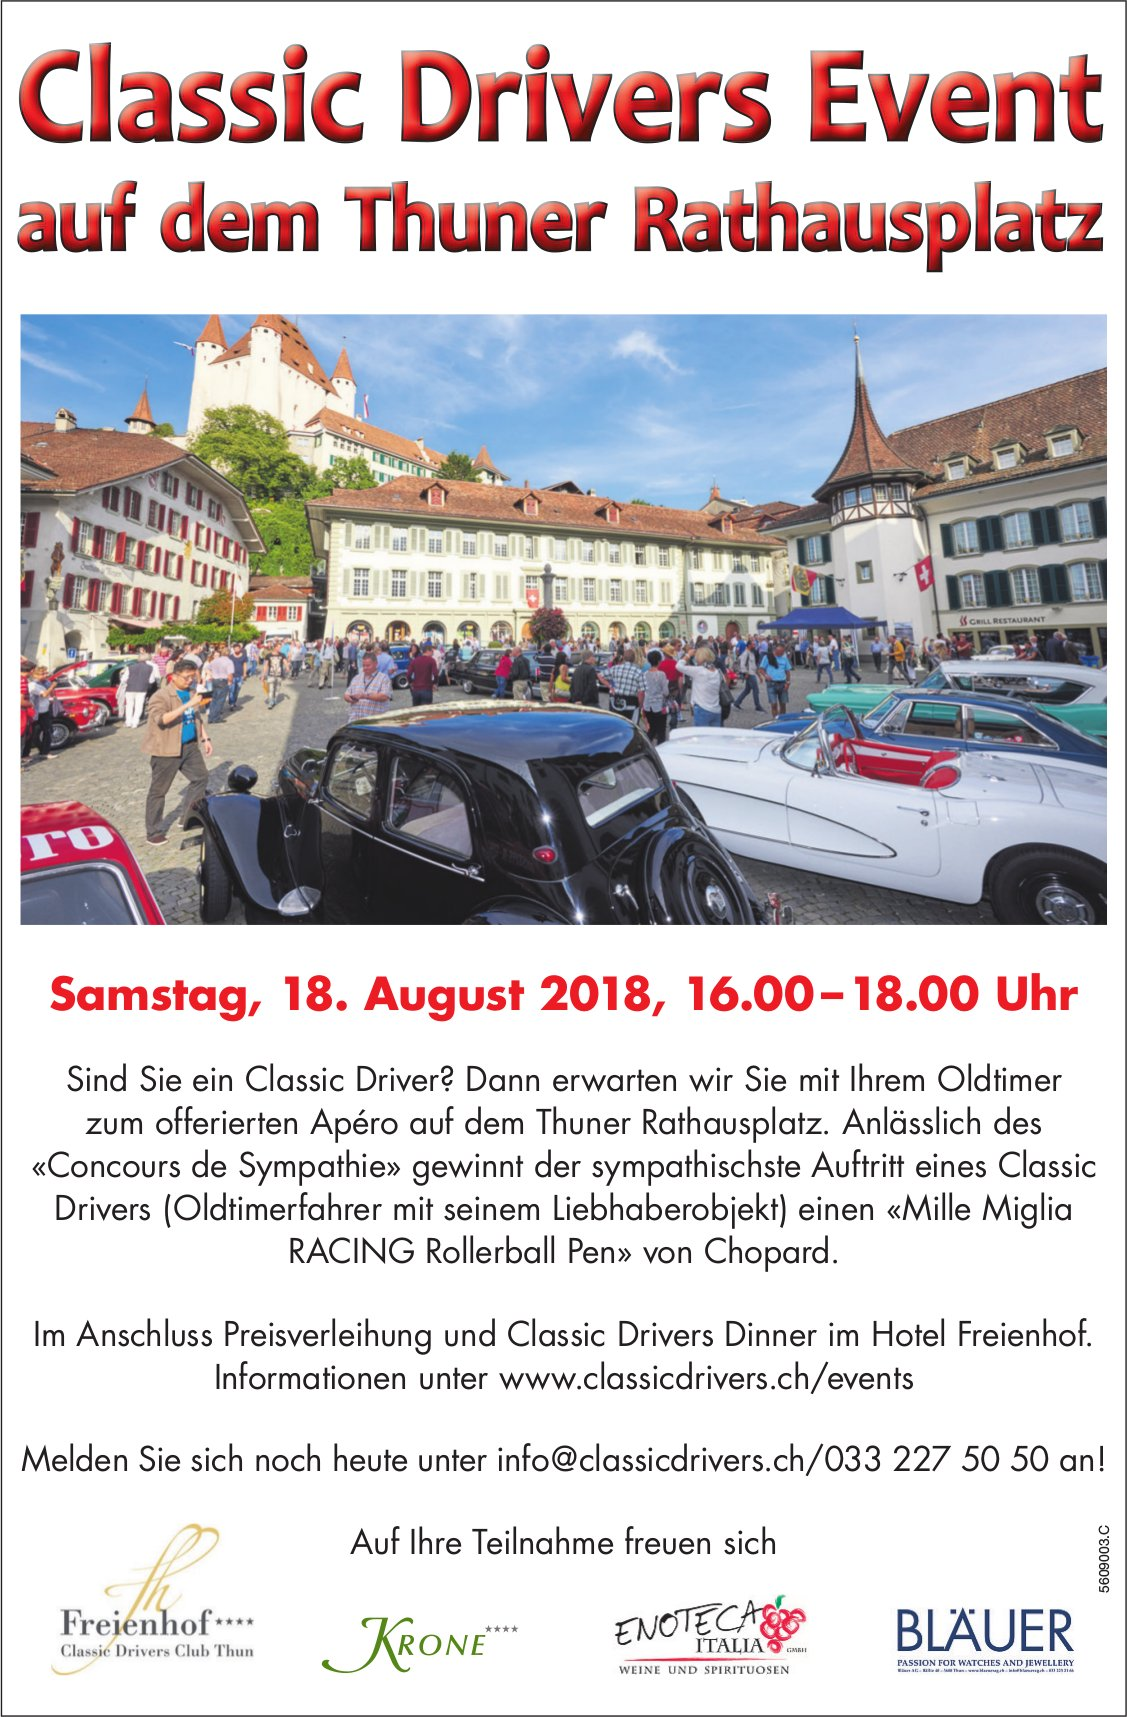 Classic Drivers Event auf dem Thuner Rathausplatz am 18. August